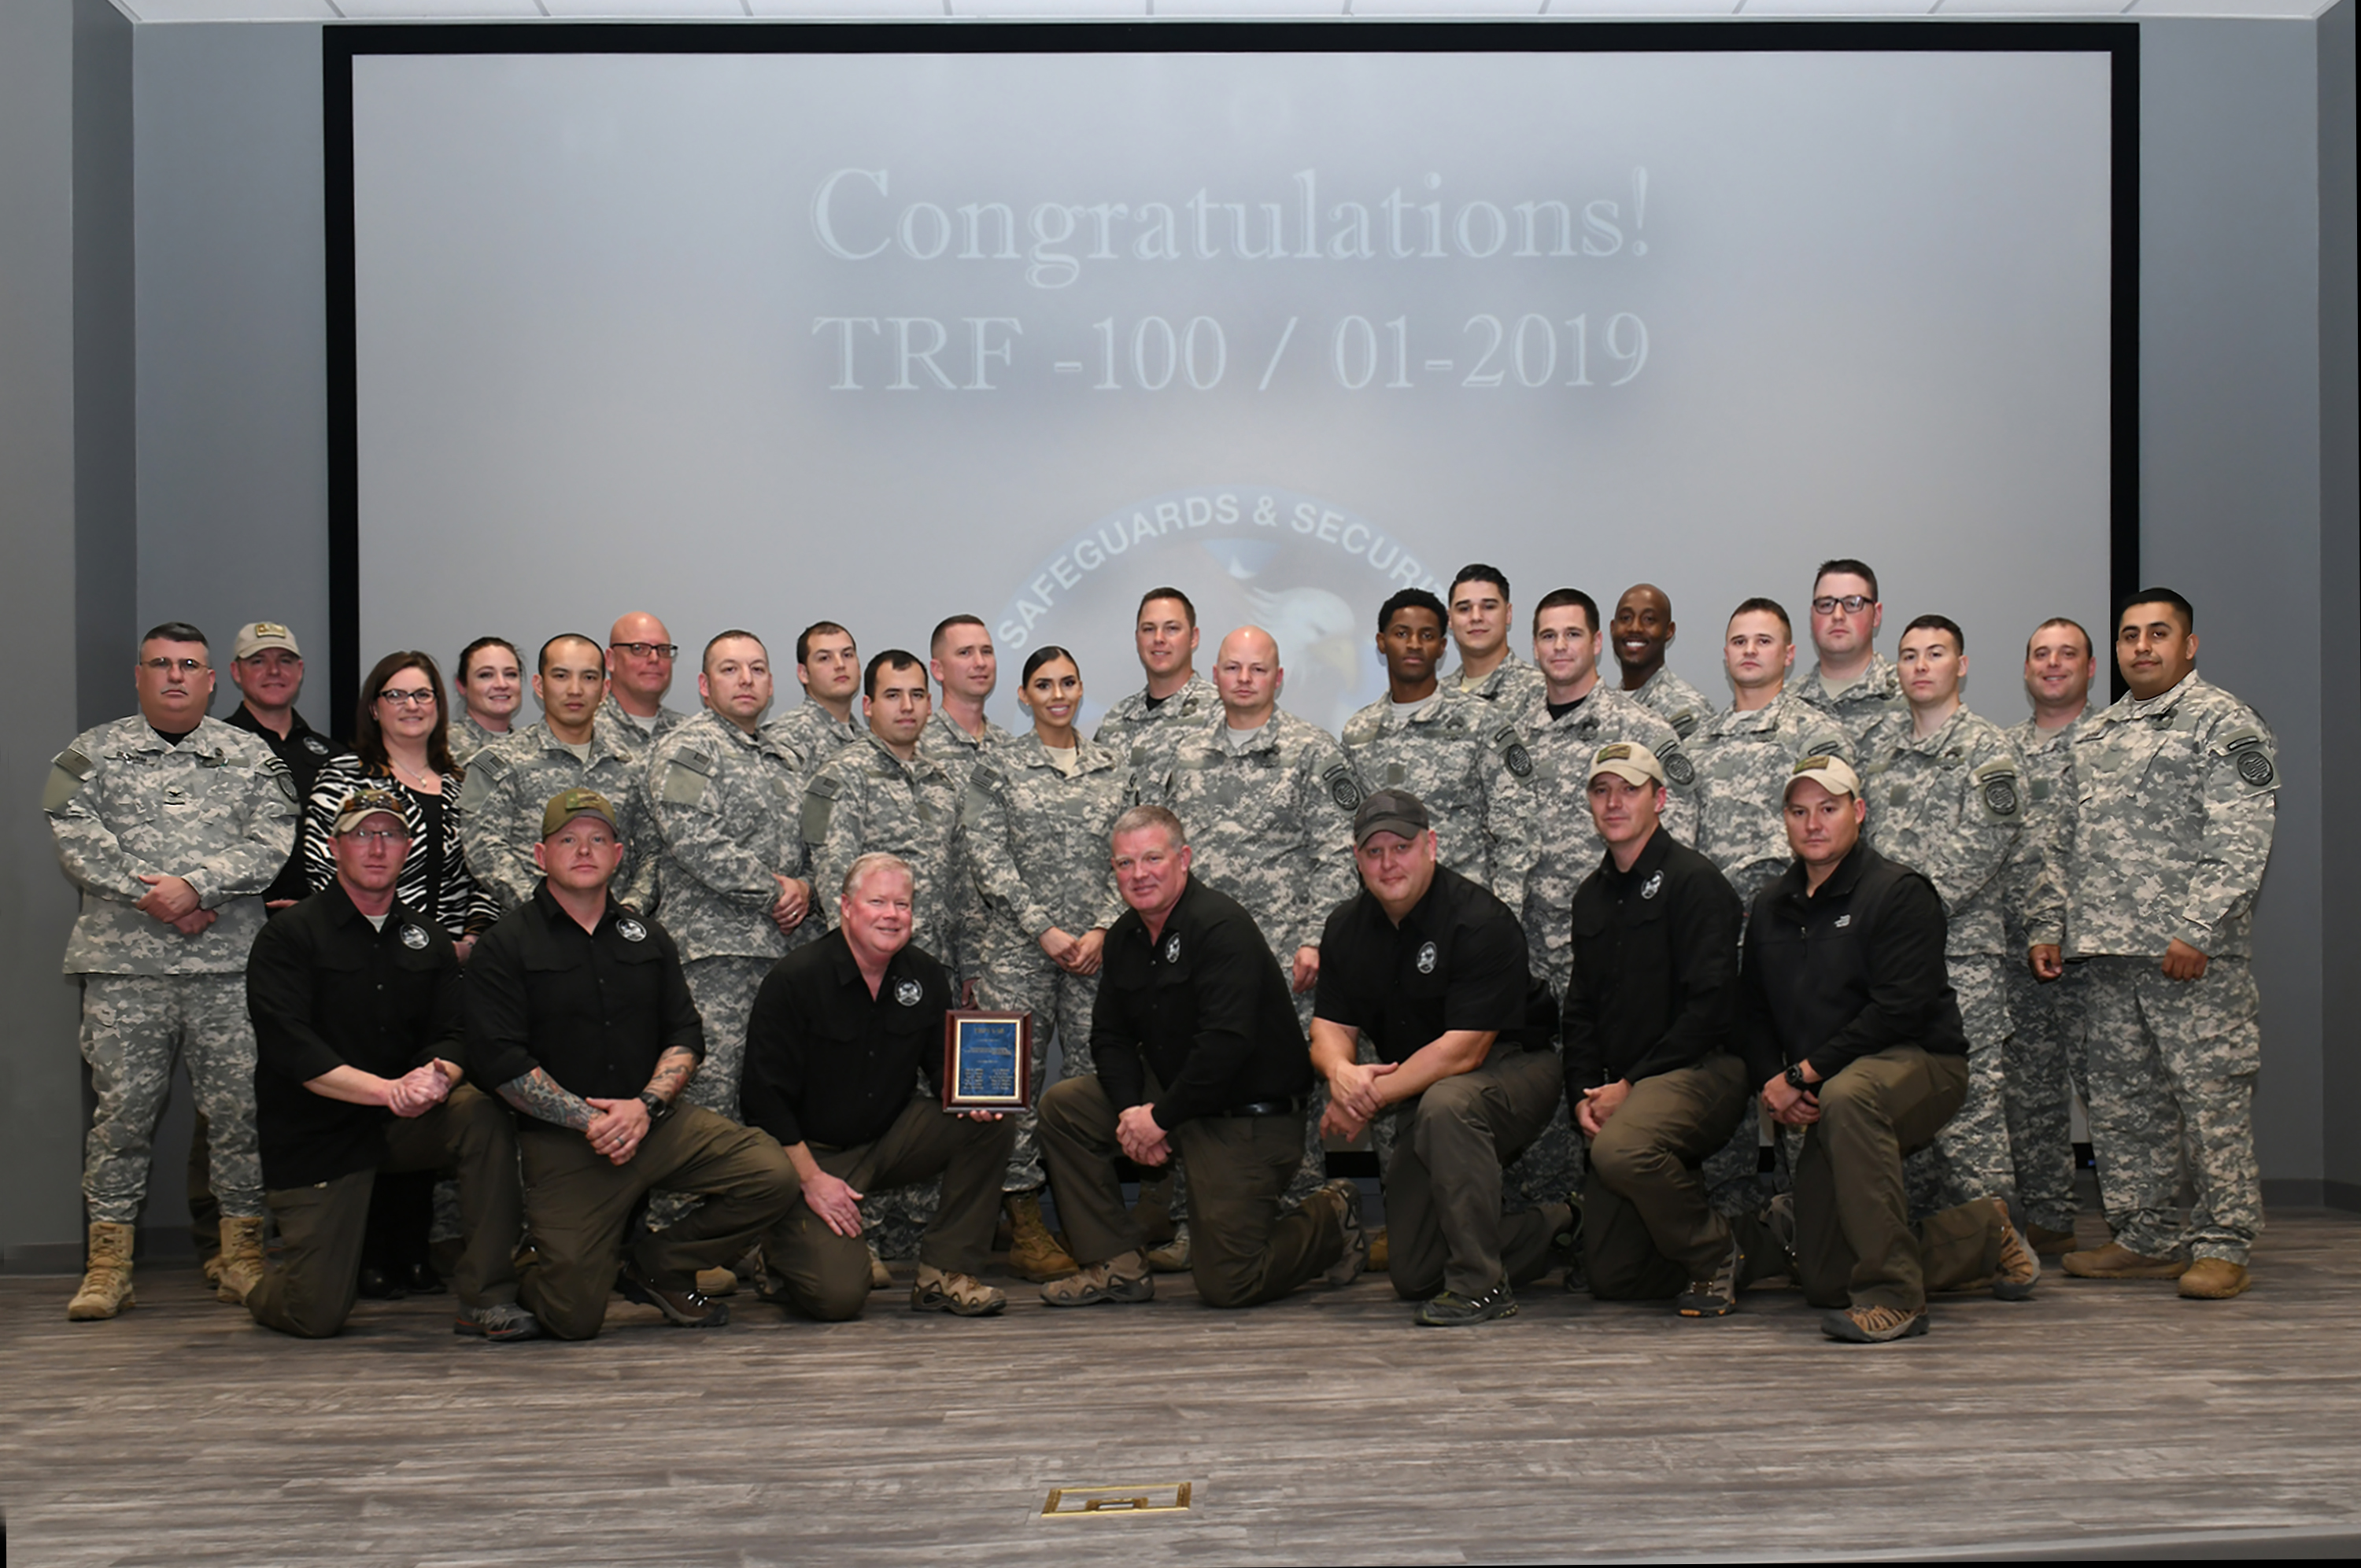 Graduates of Department of Energy National Training Center's Tactical Response Force I